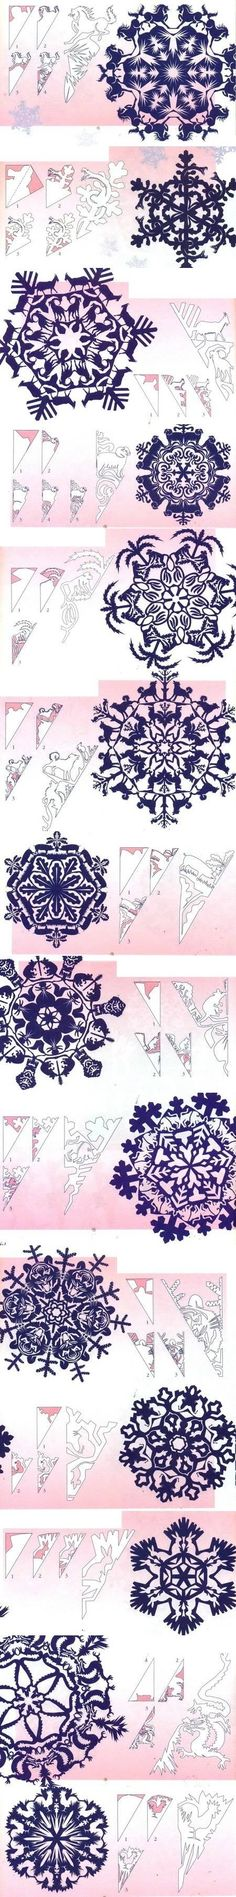 These are some super detailed animal themed snowflakes.